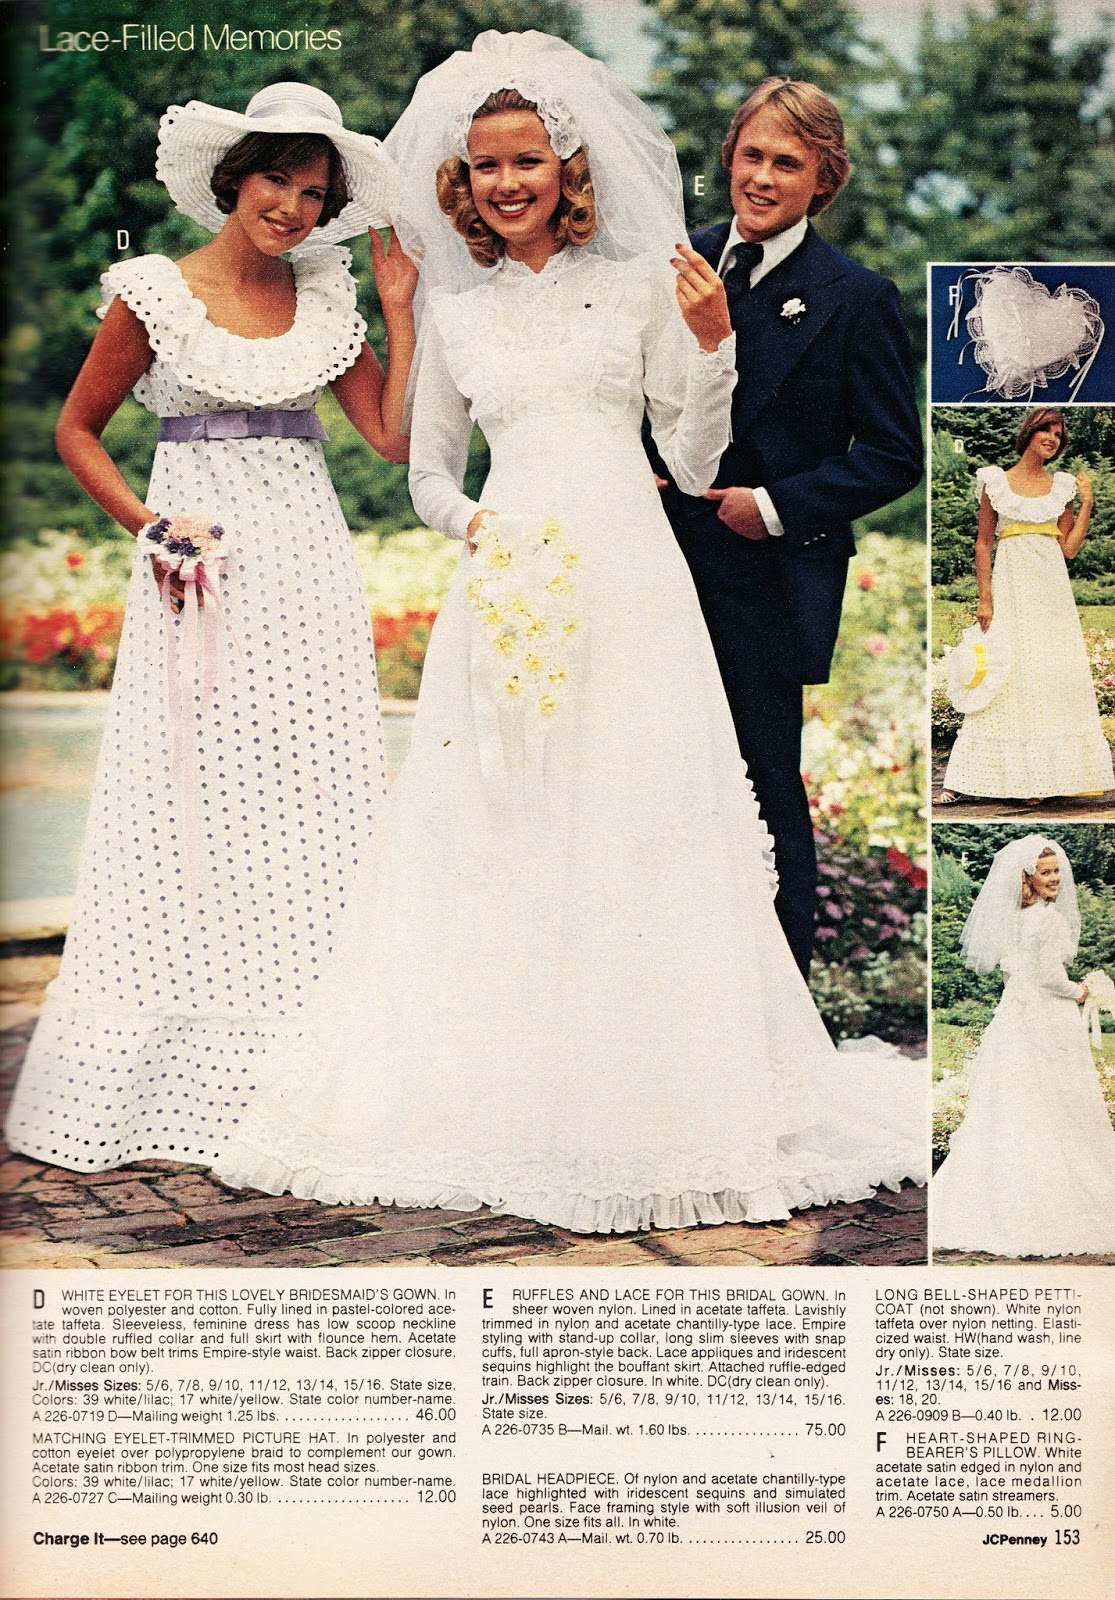 crazy catalog stuff part 4 say yes to wedding dresses sears Okay okay this dress costs 75 instead of 50 For my precious pumpkin I ll splurge for the extra 25 00 after all it s JCP instead of Sears so you d